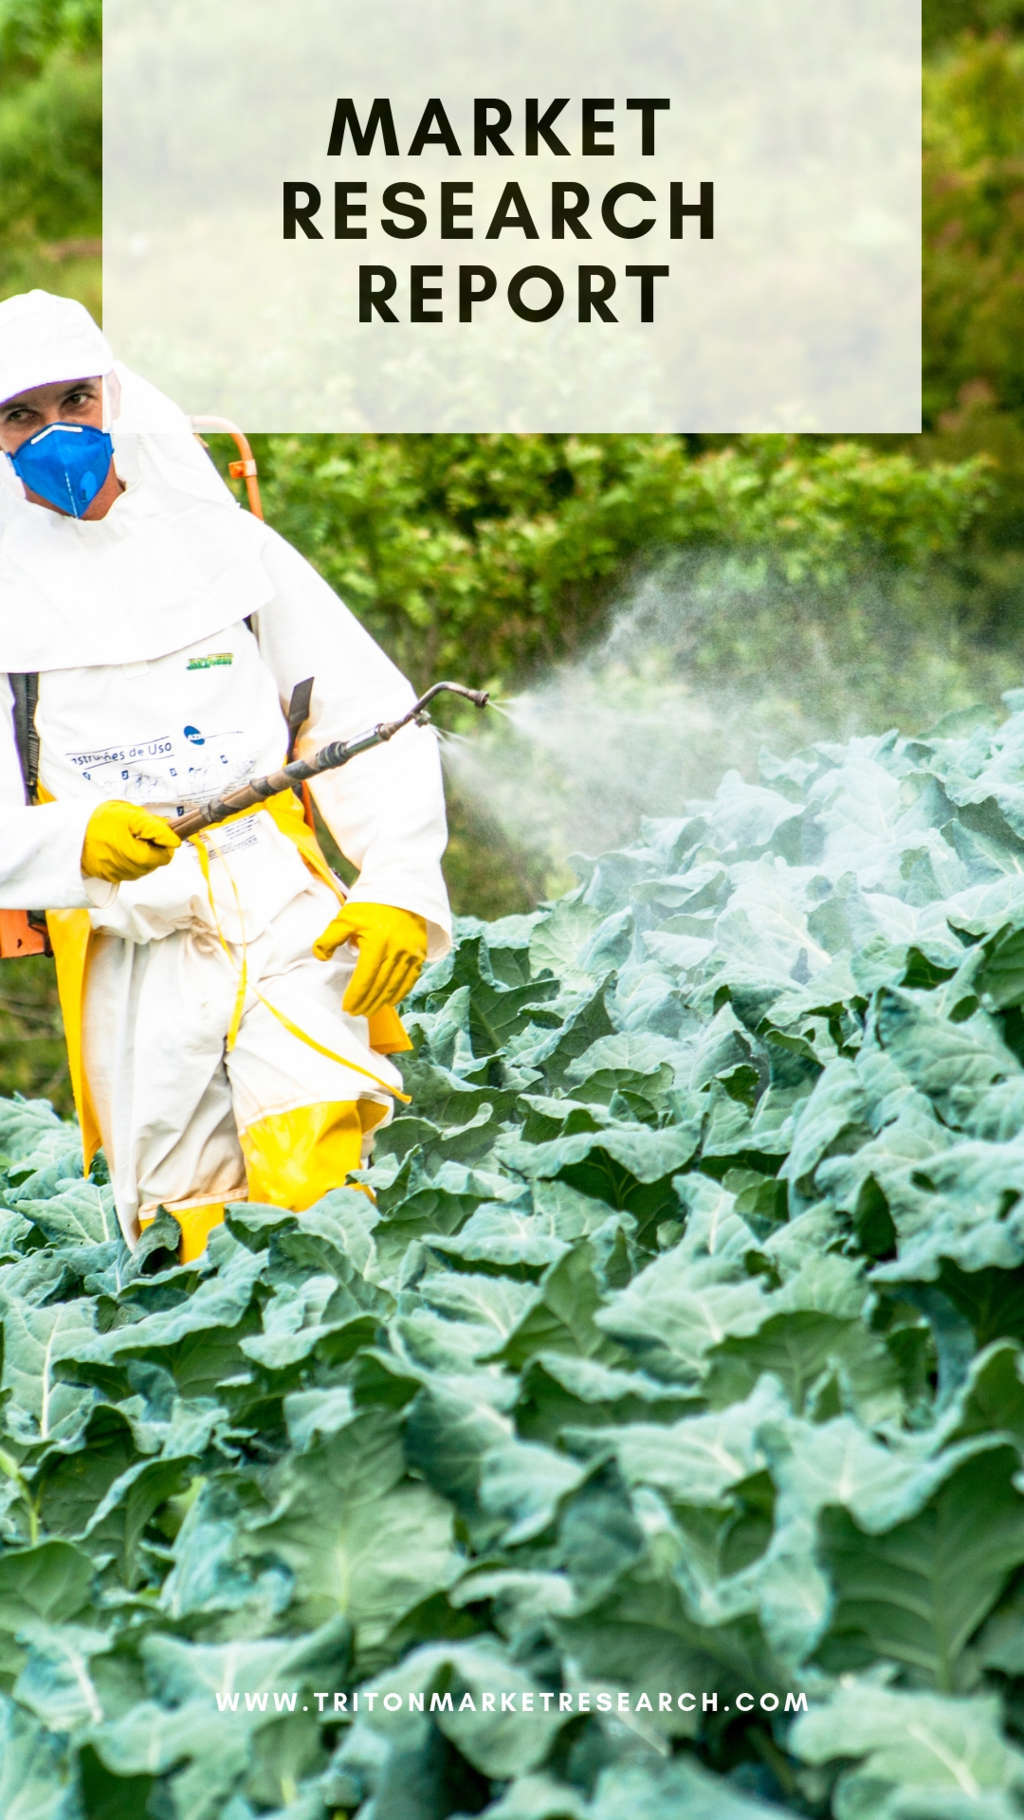 NORTH AMERICA BIOPESTICIDES MARKET 2019-2027